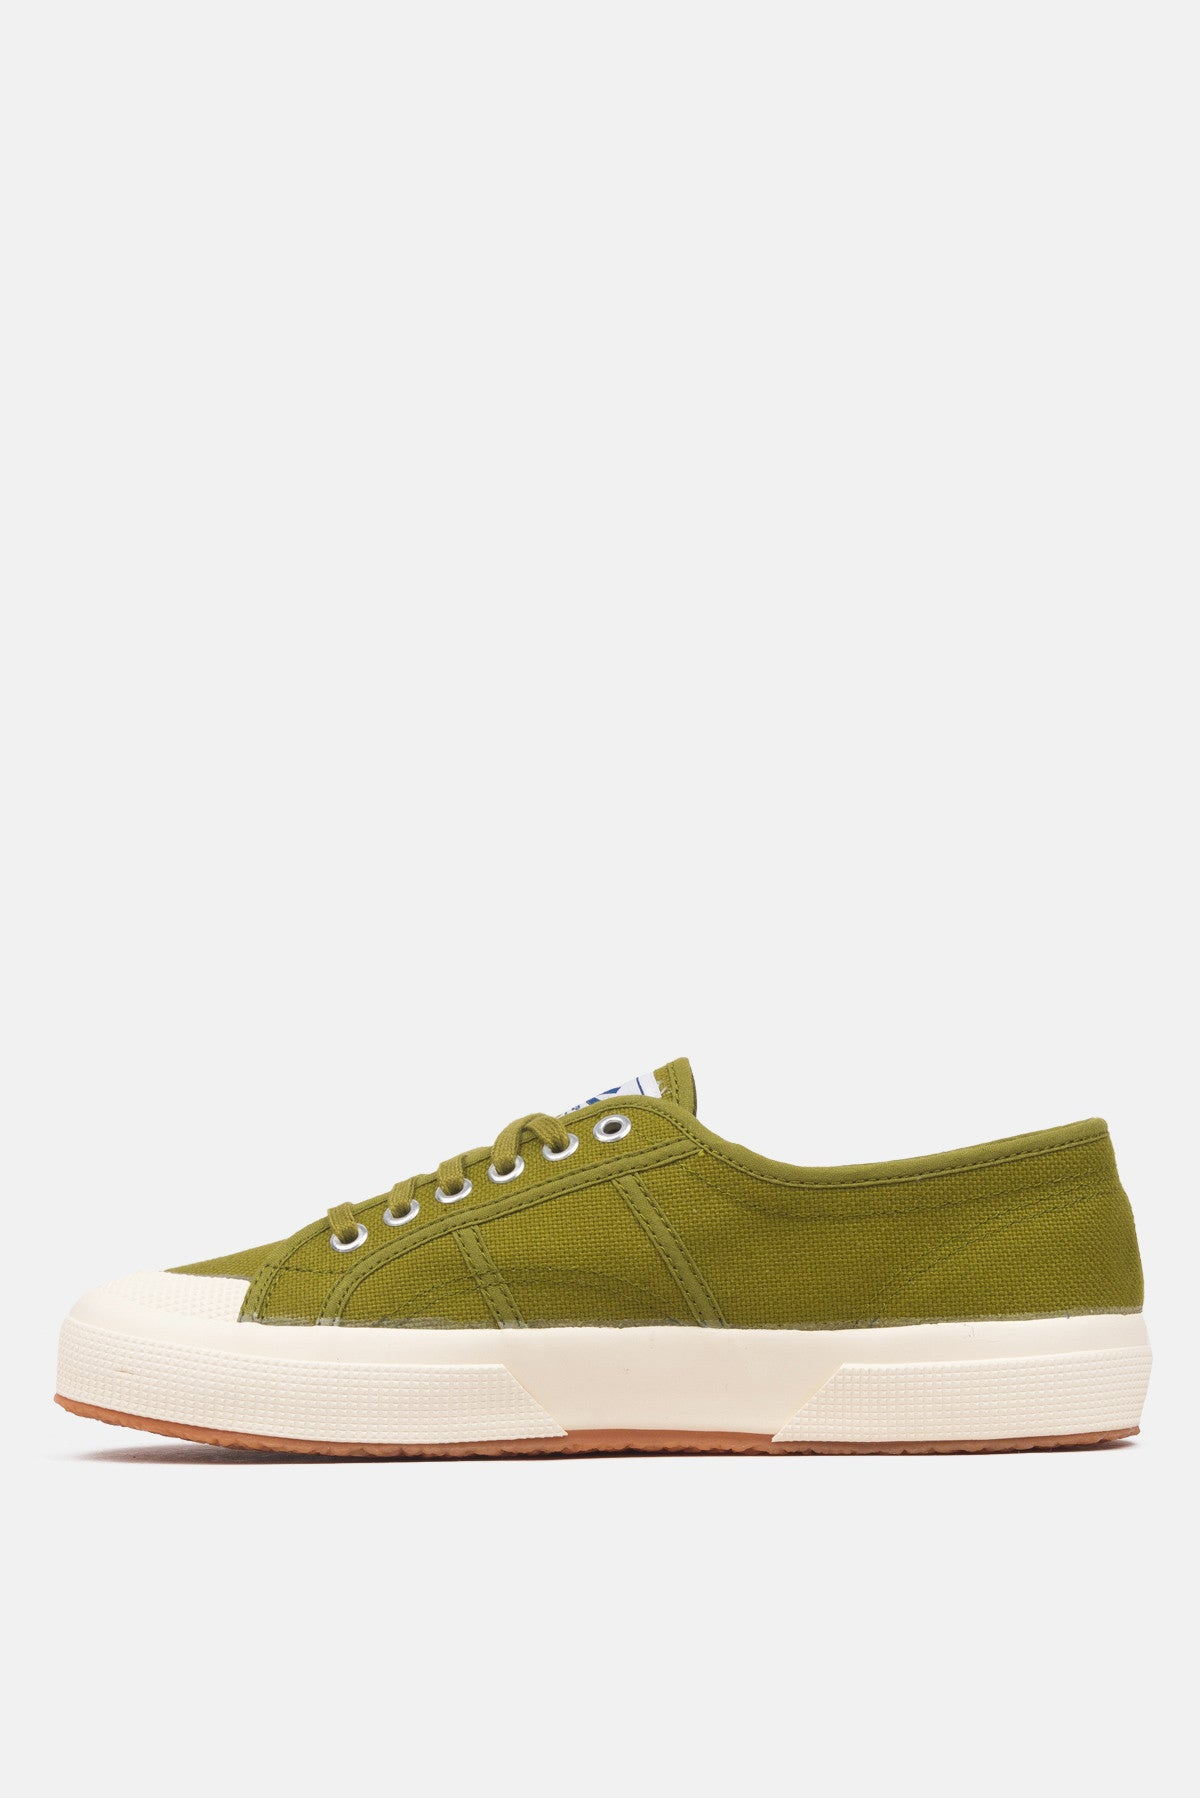 4ef54ec9ef Superga 2390 Cotu Shoes available from Priory